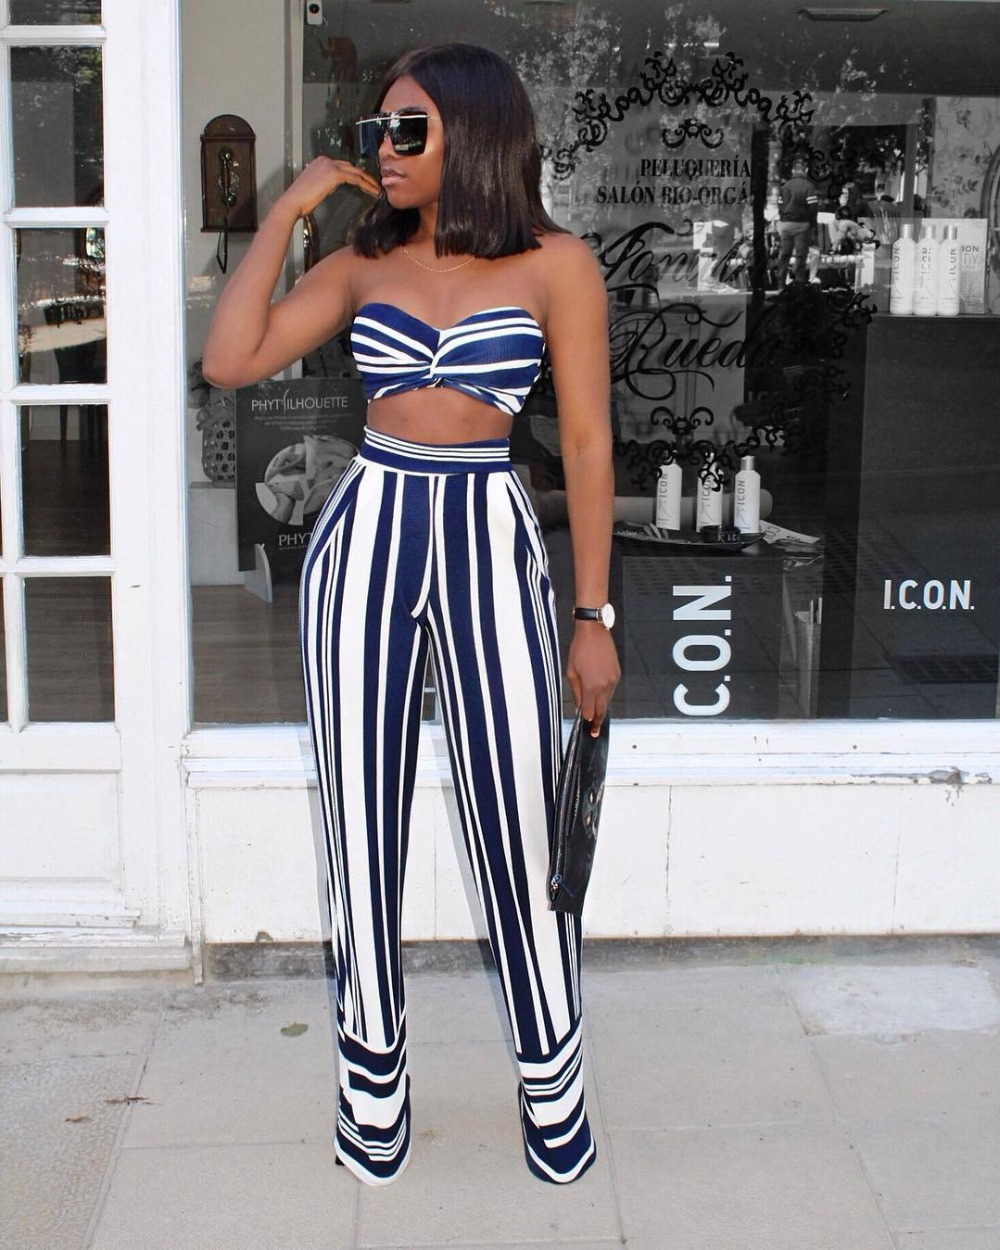 VAZN Top Quality High Design 2018 Beach Style 2 Piece Women Set Striped Strapless Mini Tops Loose Full Length Chiffong Set J6018